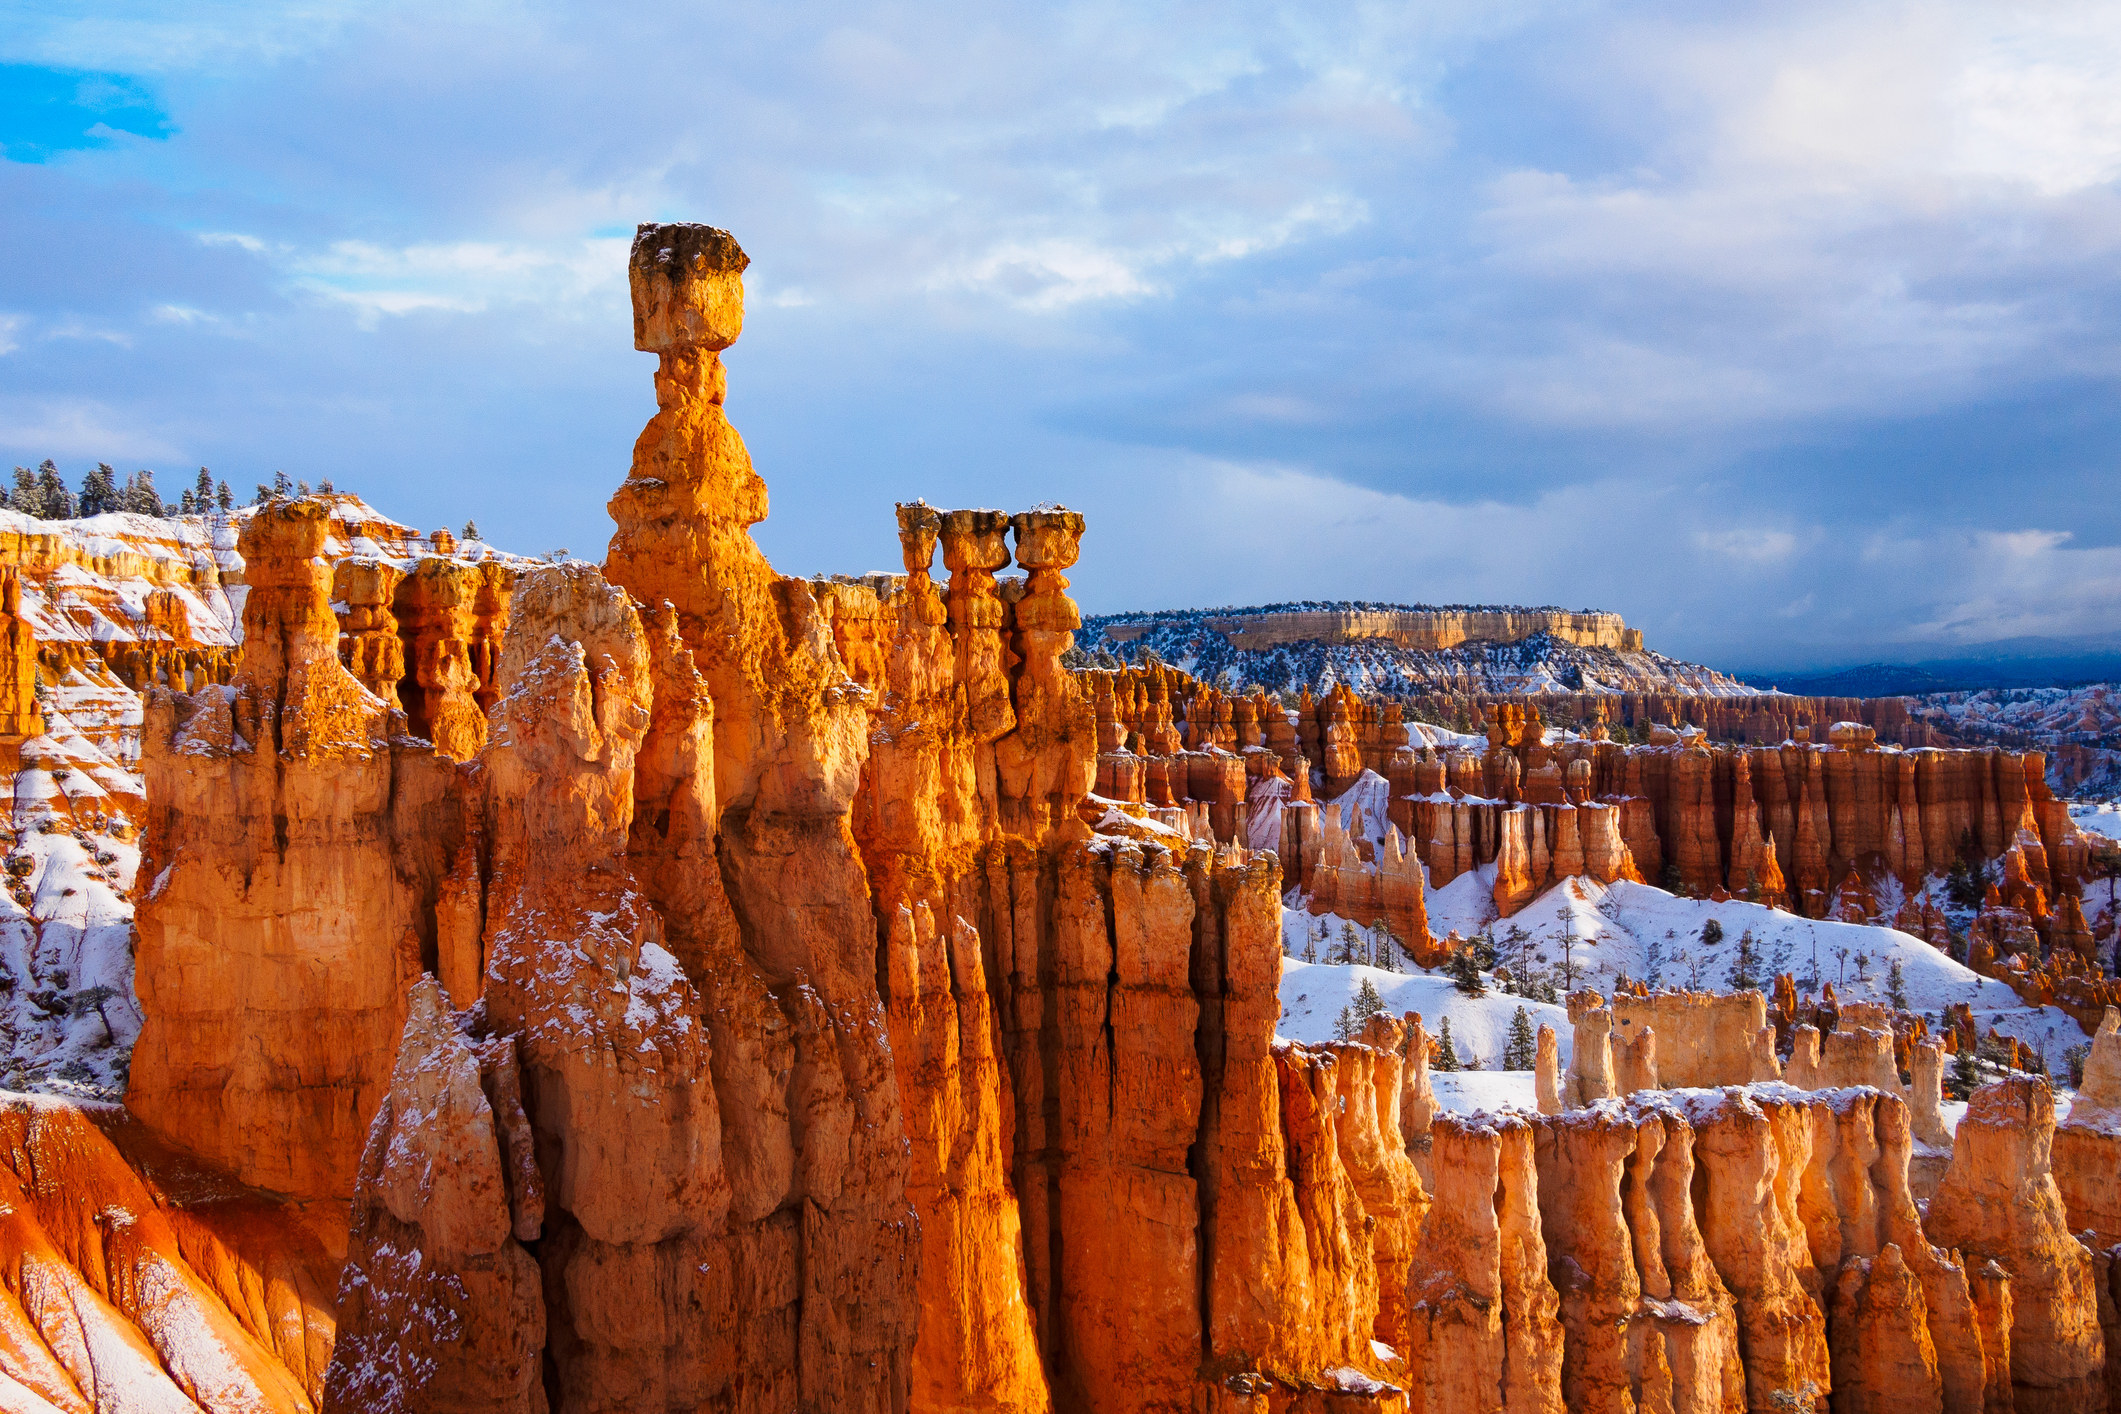 Red spires covered in snow